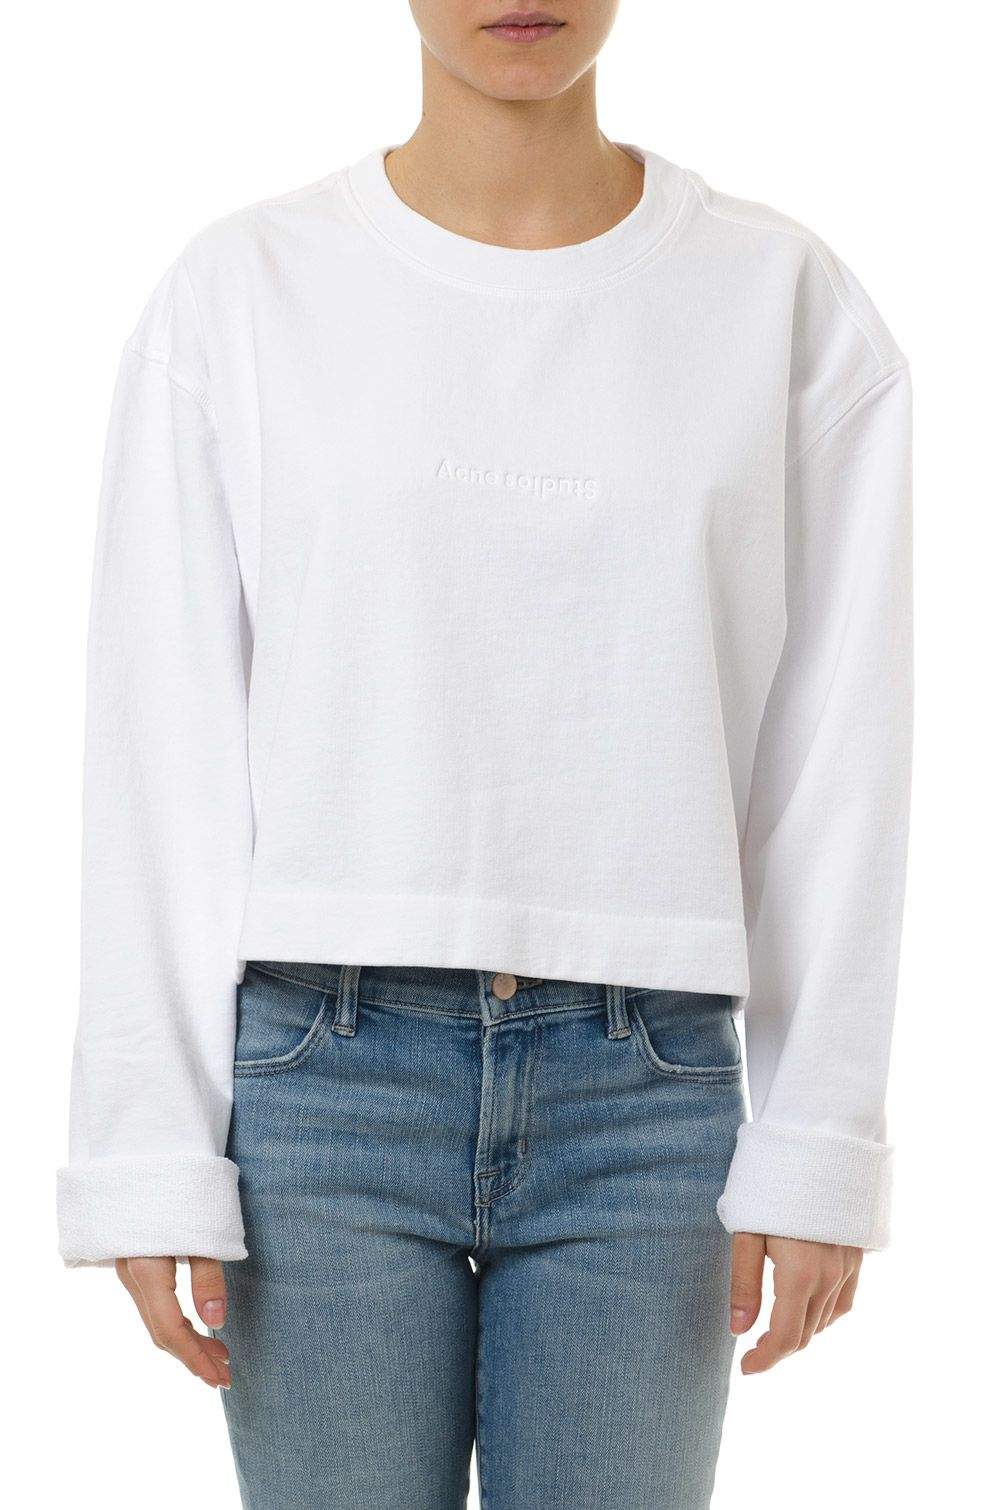 Acne Studios White Cotton Logo Sweatshirt